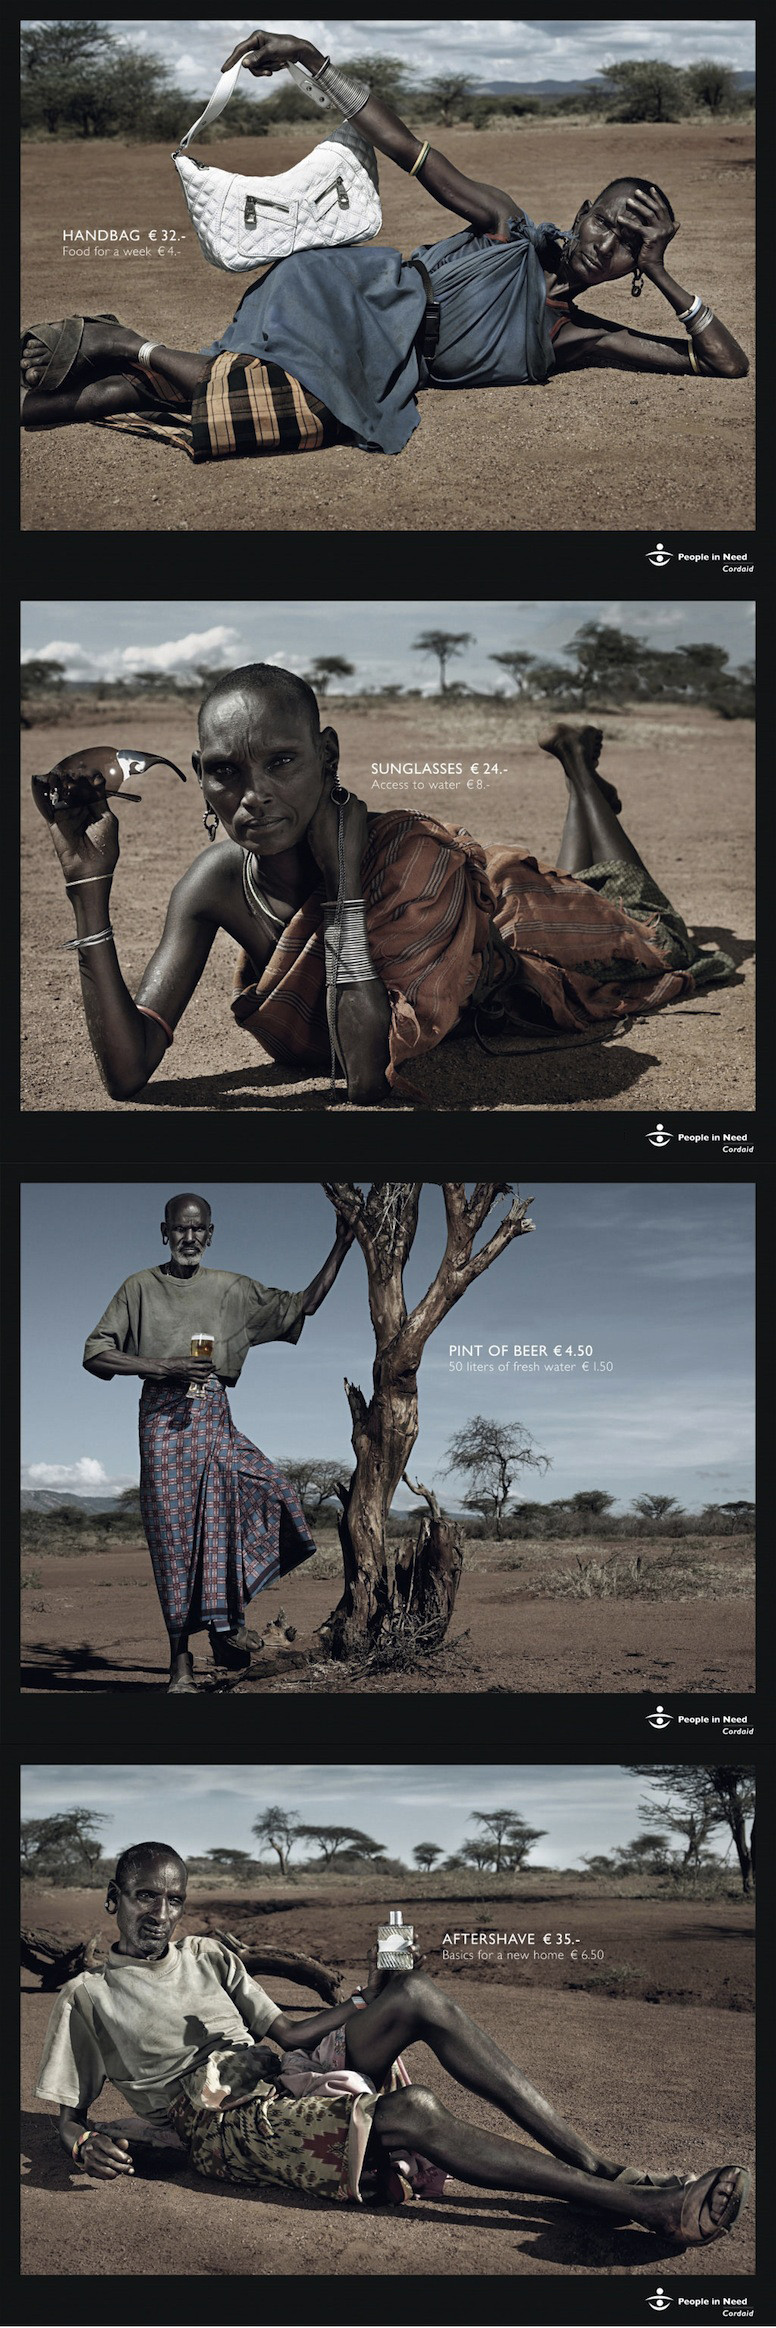 people in need campaign